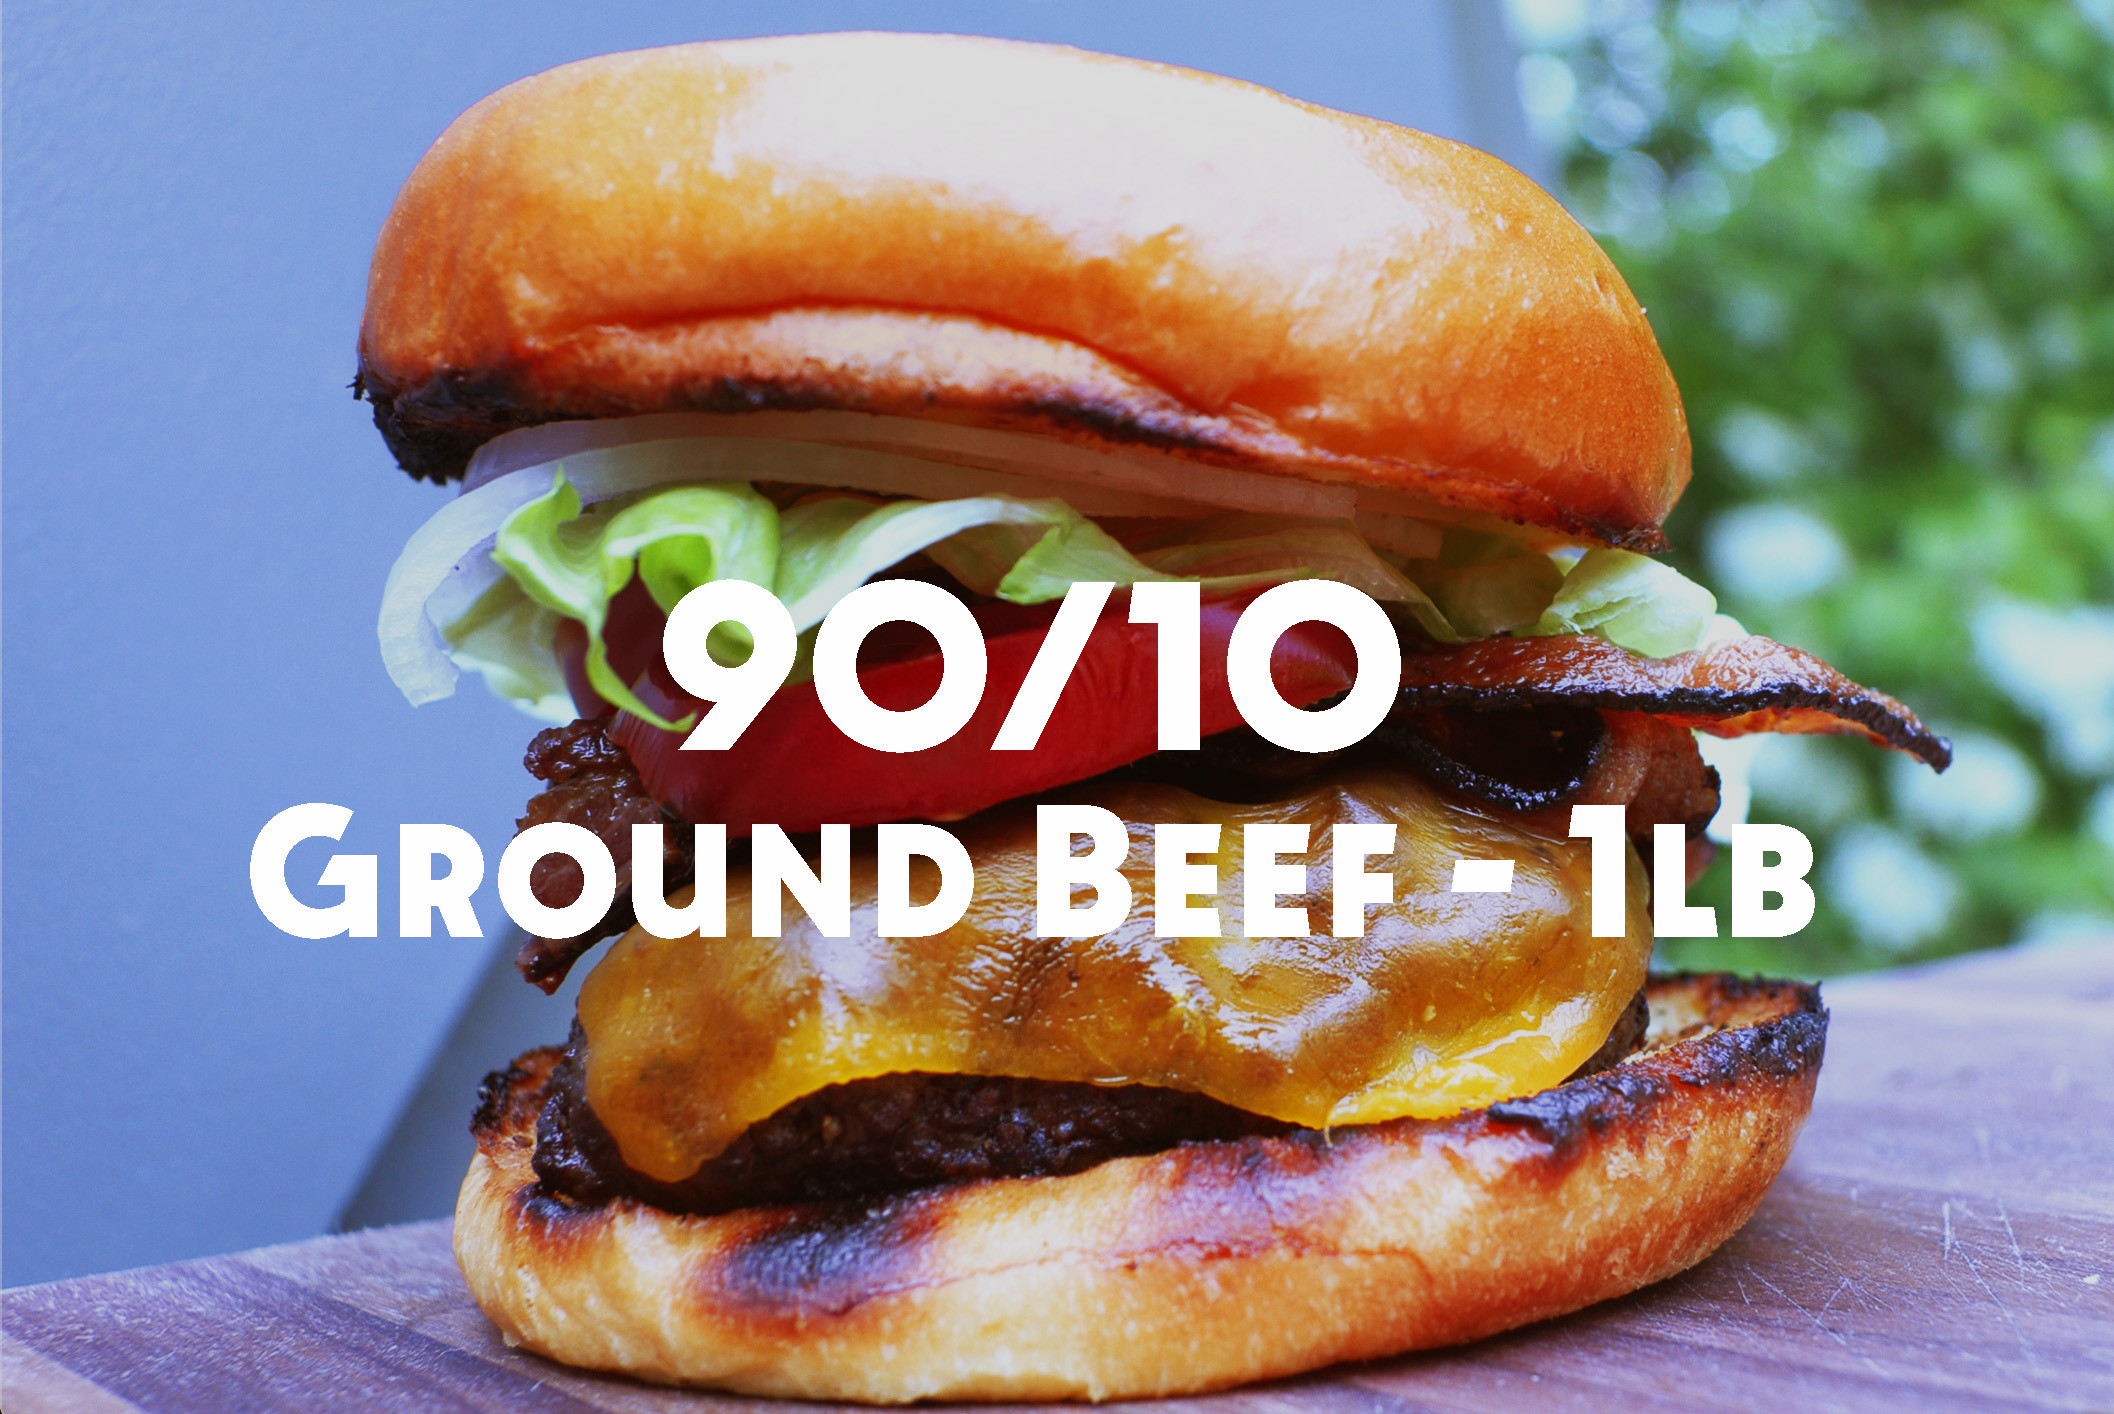 Ground Beef - 90% Lean